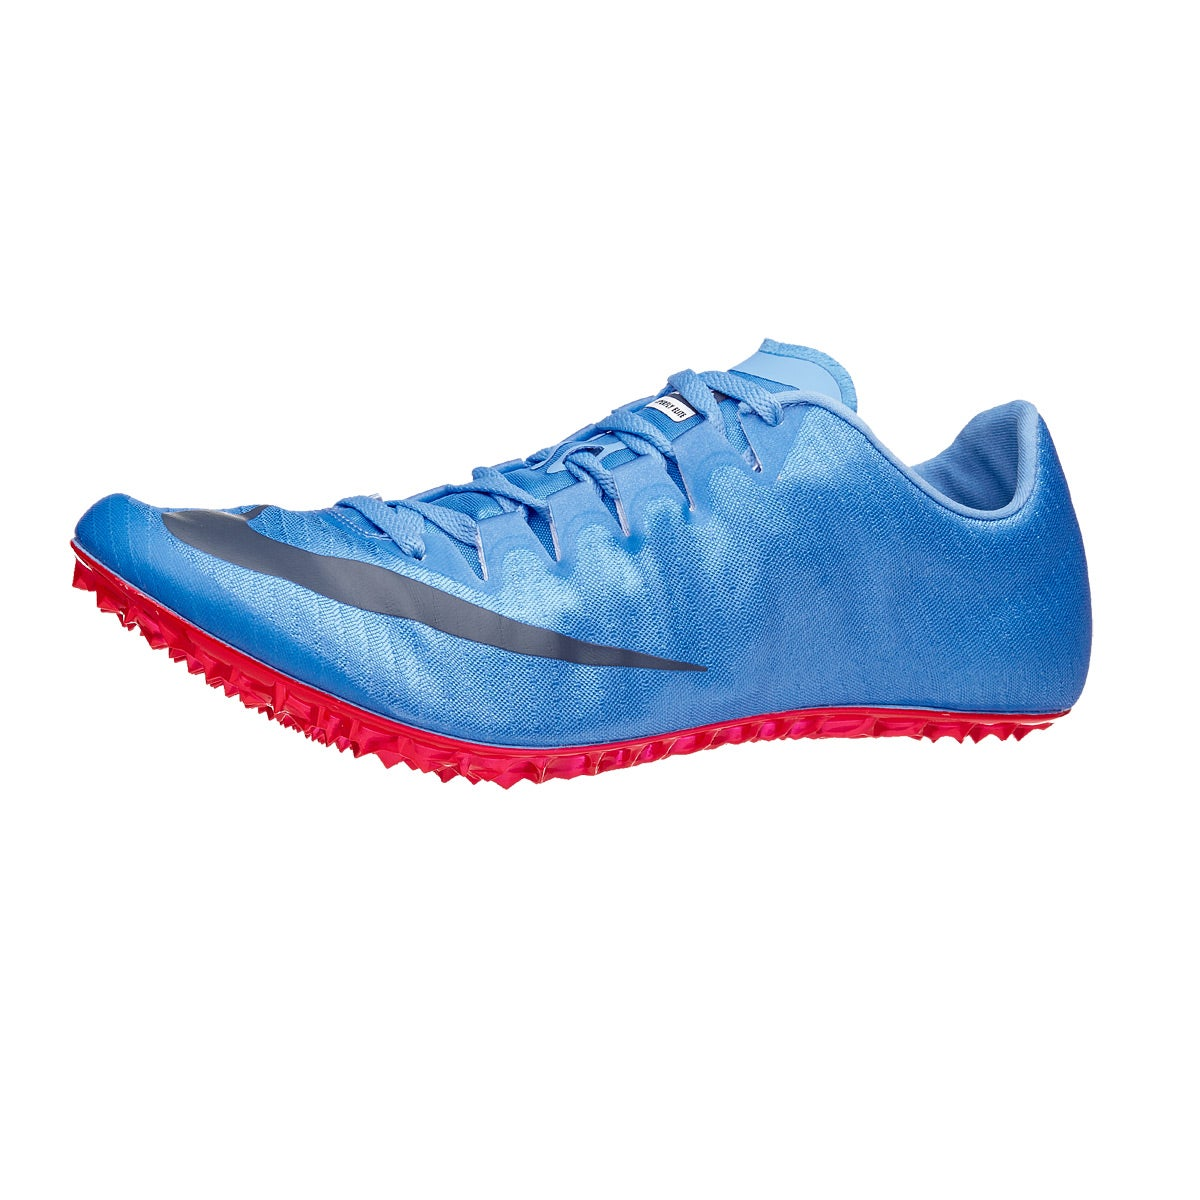 Nike Zoom Superfly Elite Unisex Spikes FootballBlue/Blu 360° View | Running  Warehouse.